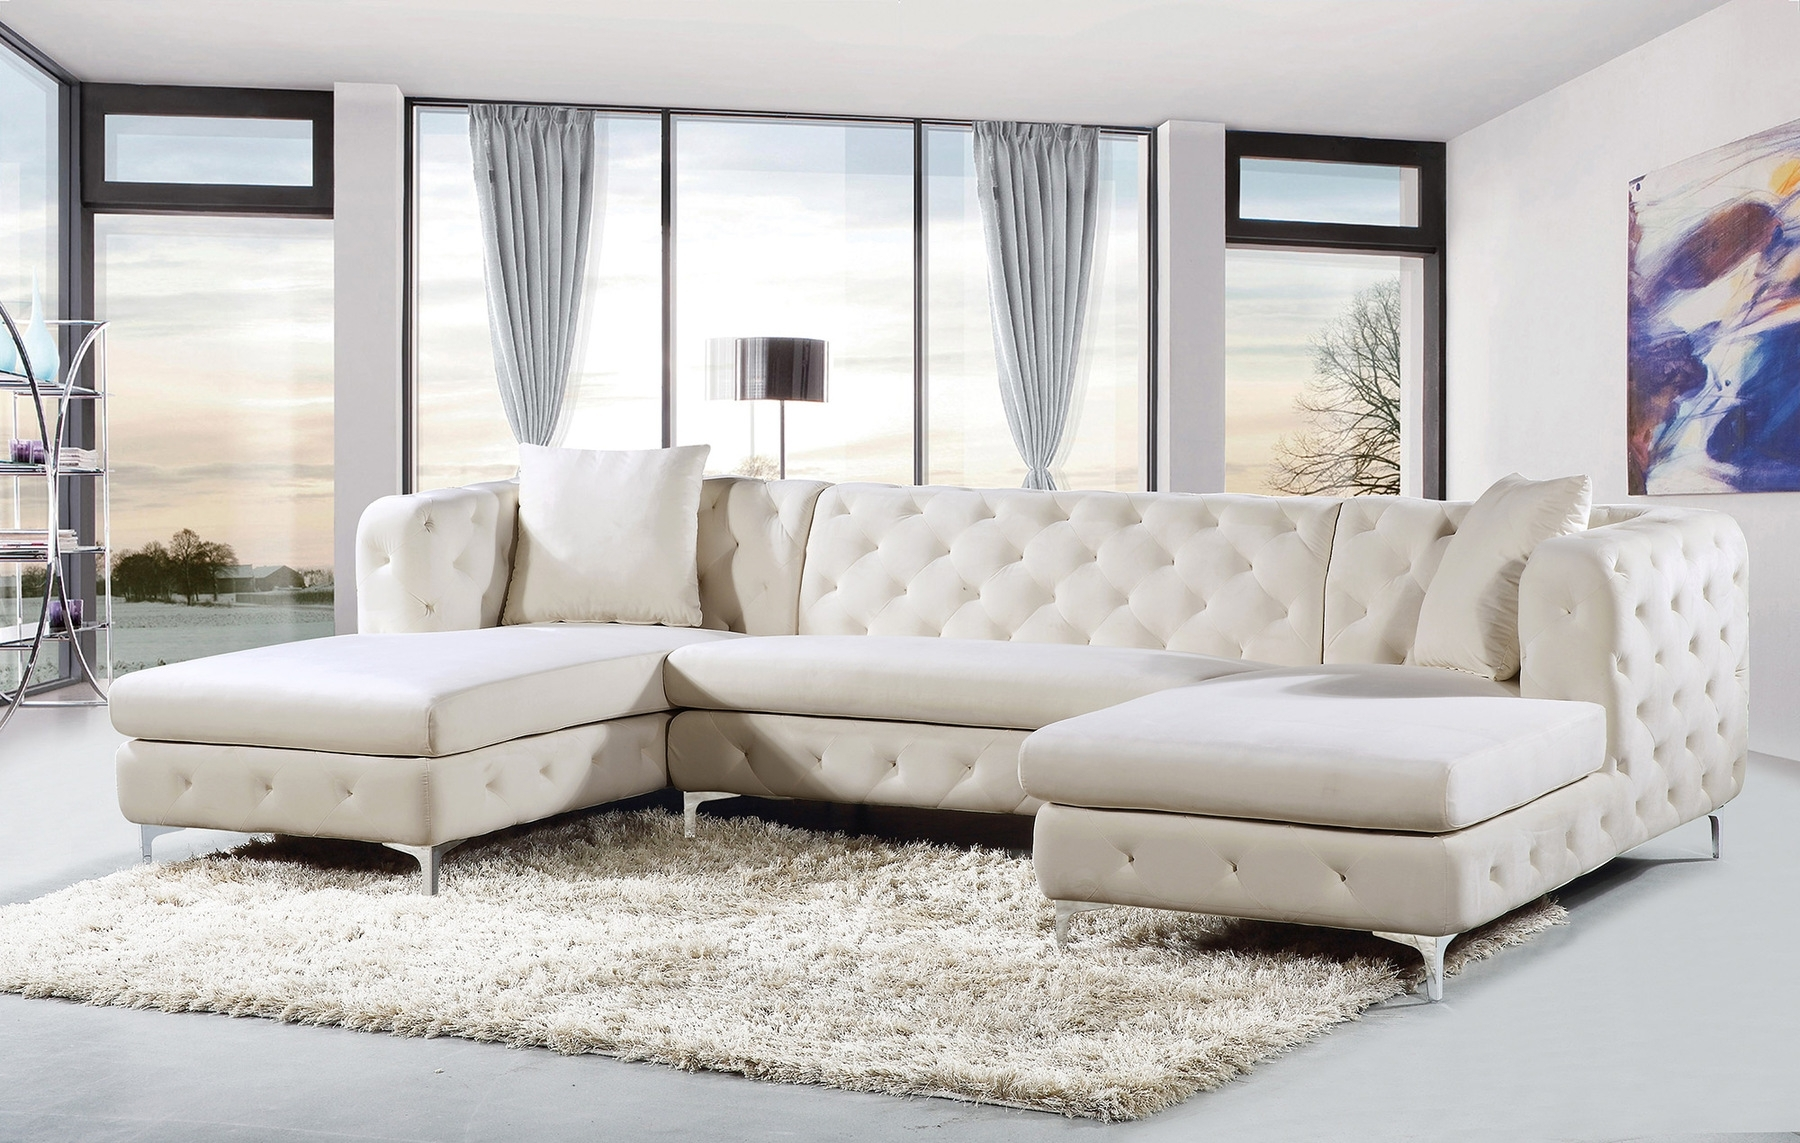 Best And Newest Sectional Sofas, Microfiber Sectional Sofas At Comfyco, Modern With Modern Microfiber Sectional Sofas (View 16 of 20)